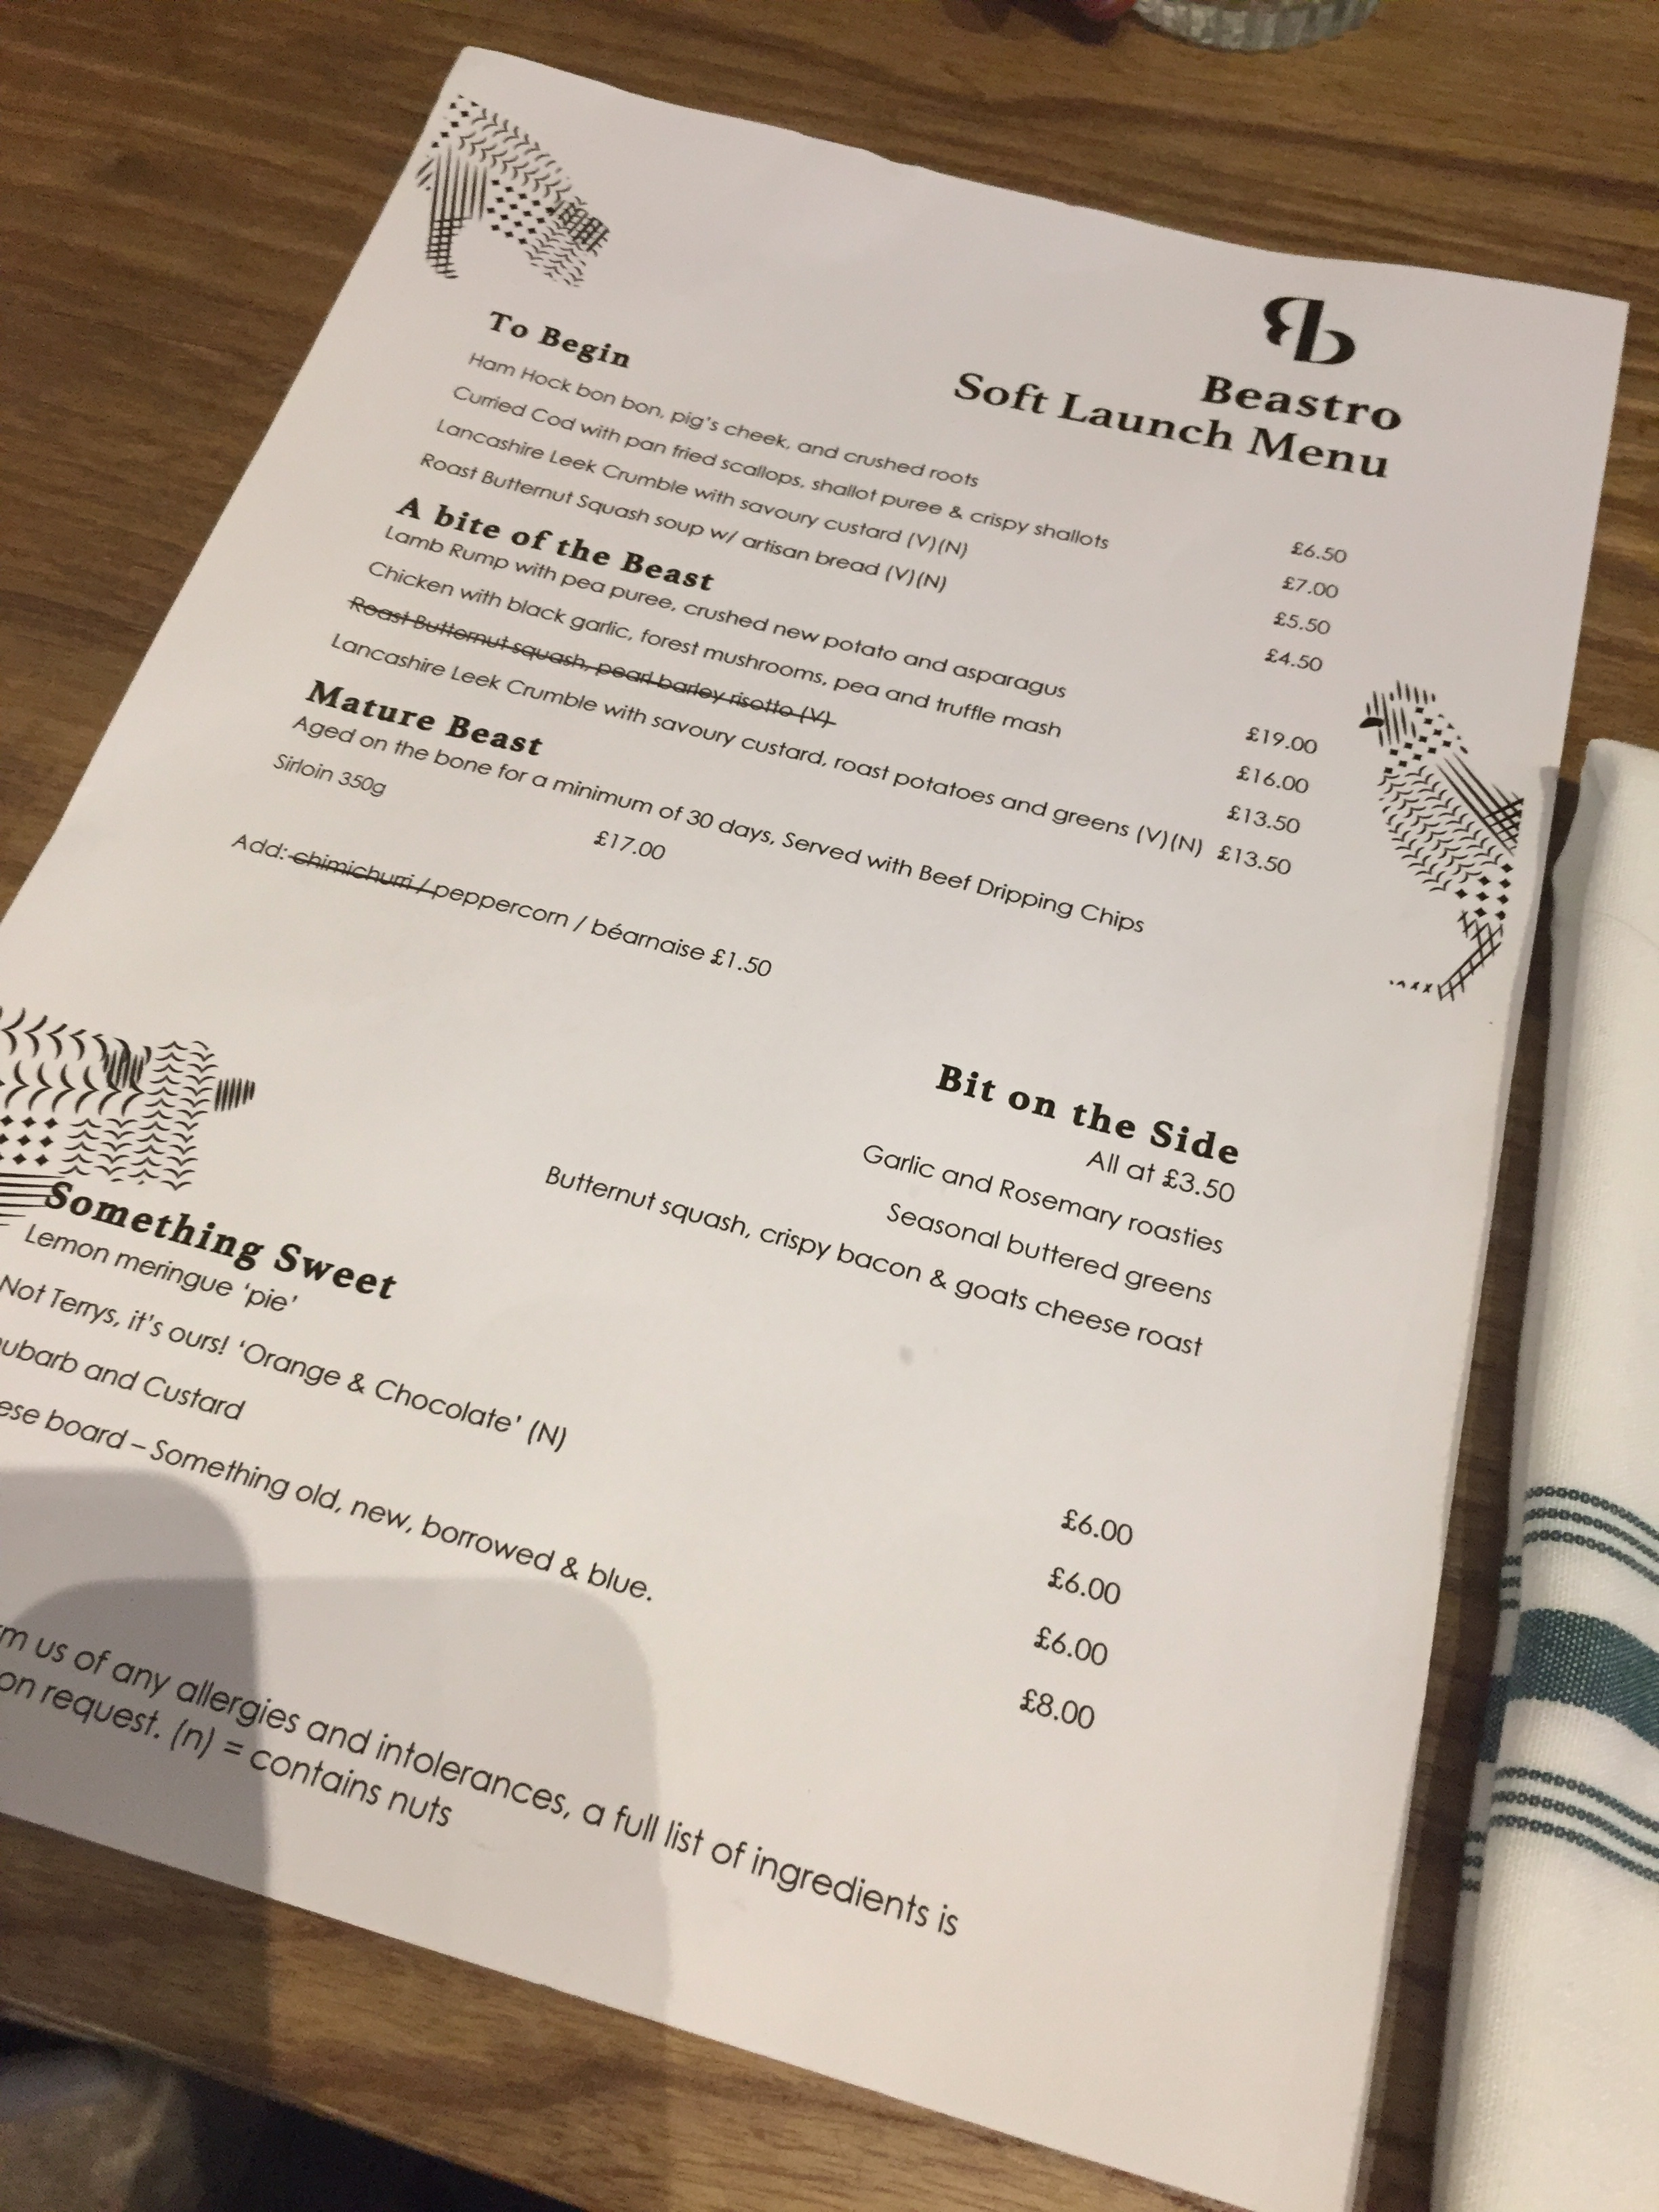 Soft Launch Menu - don't worry if you're veggie - there's still lots of options for you.